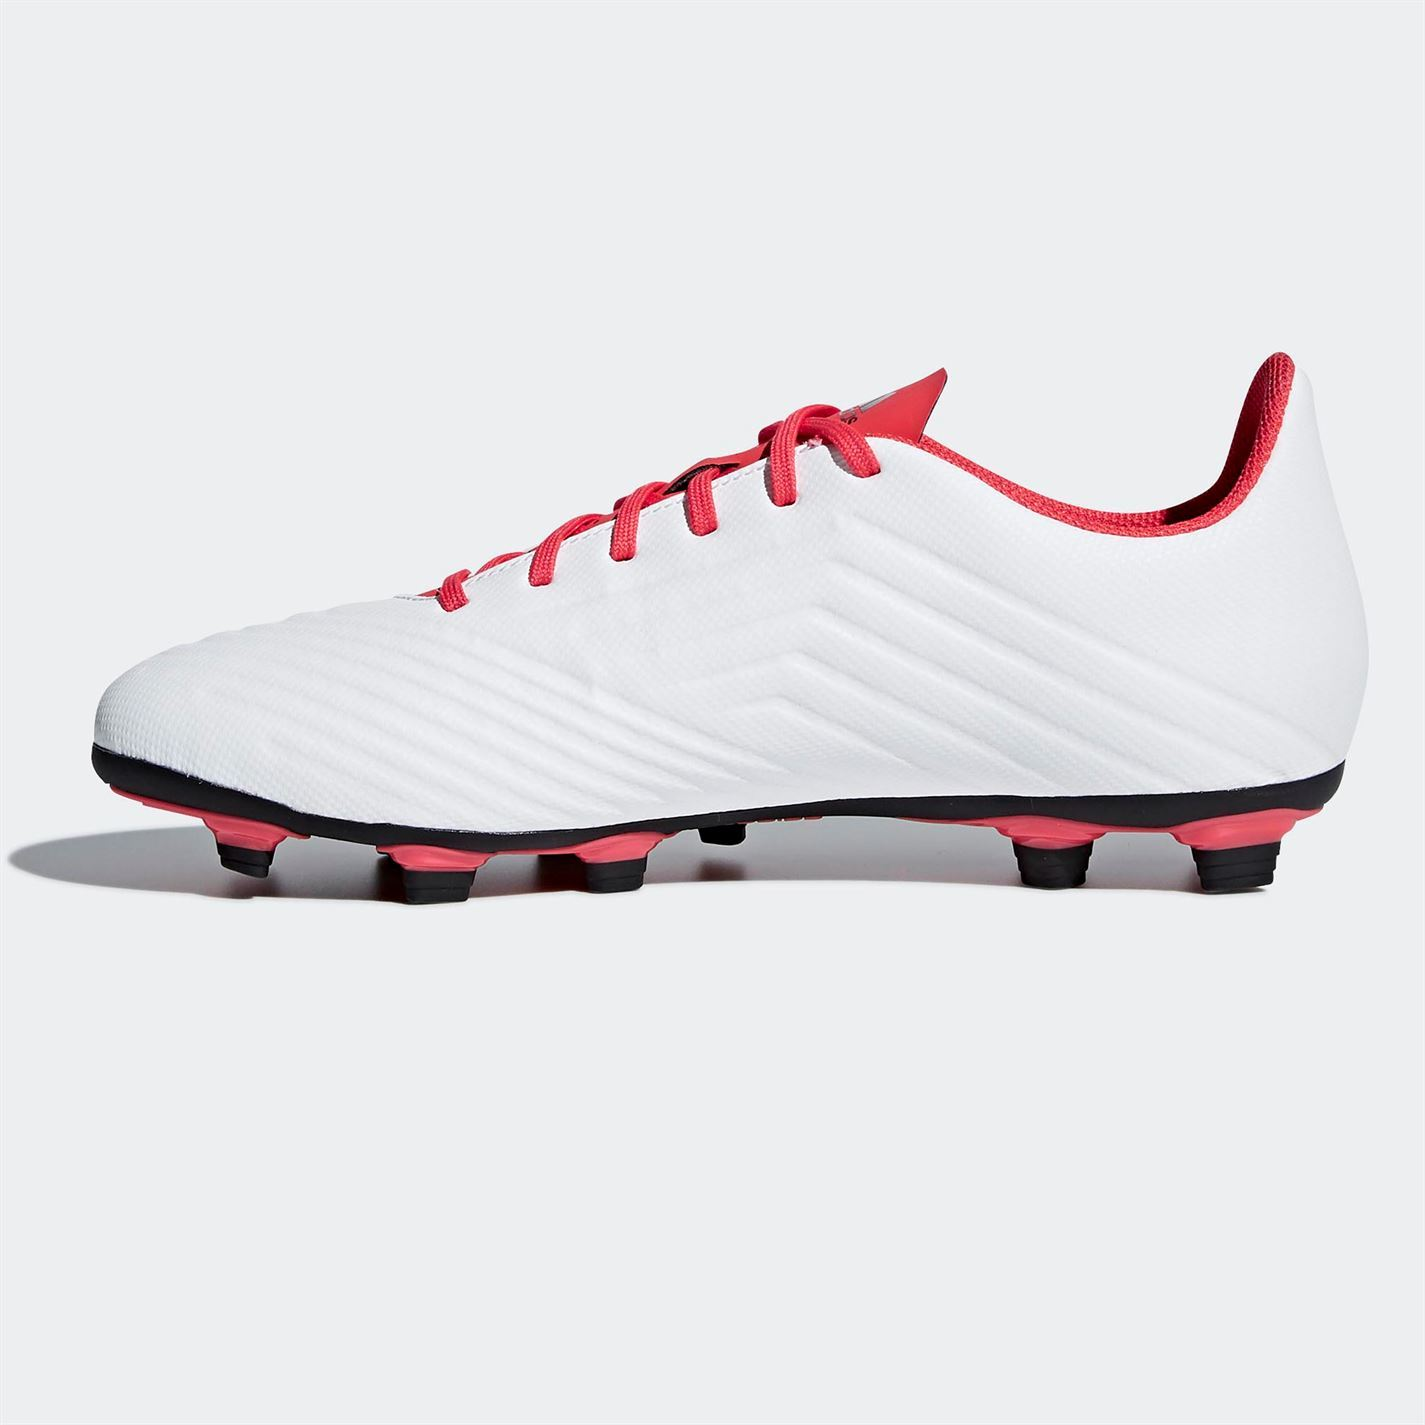 01b0ad3fb ... adidas Predator 18.4 Firm Ground Football Boots Mens White Red Soccer  Cleats